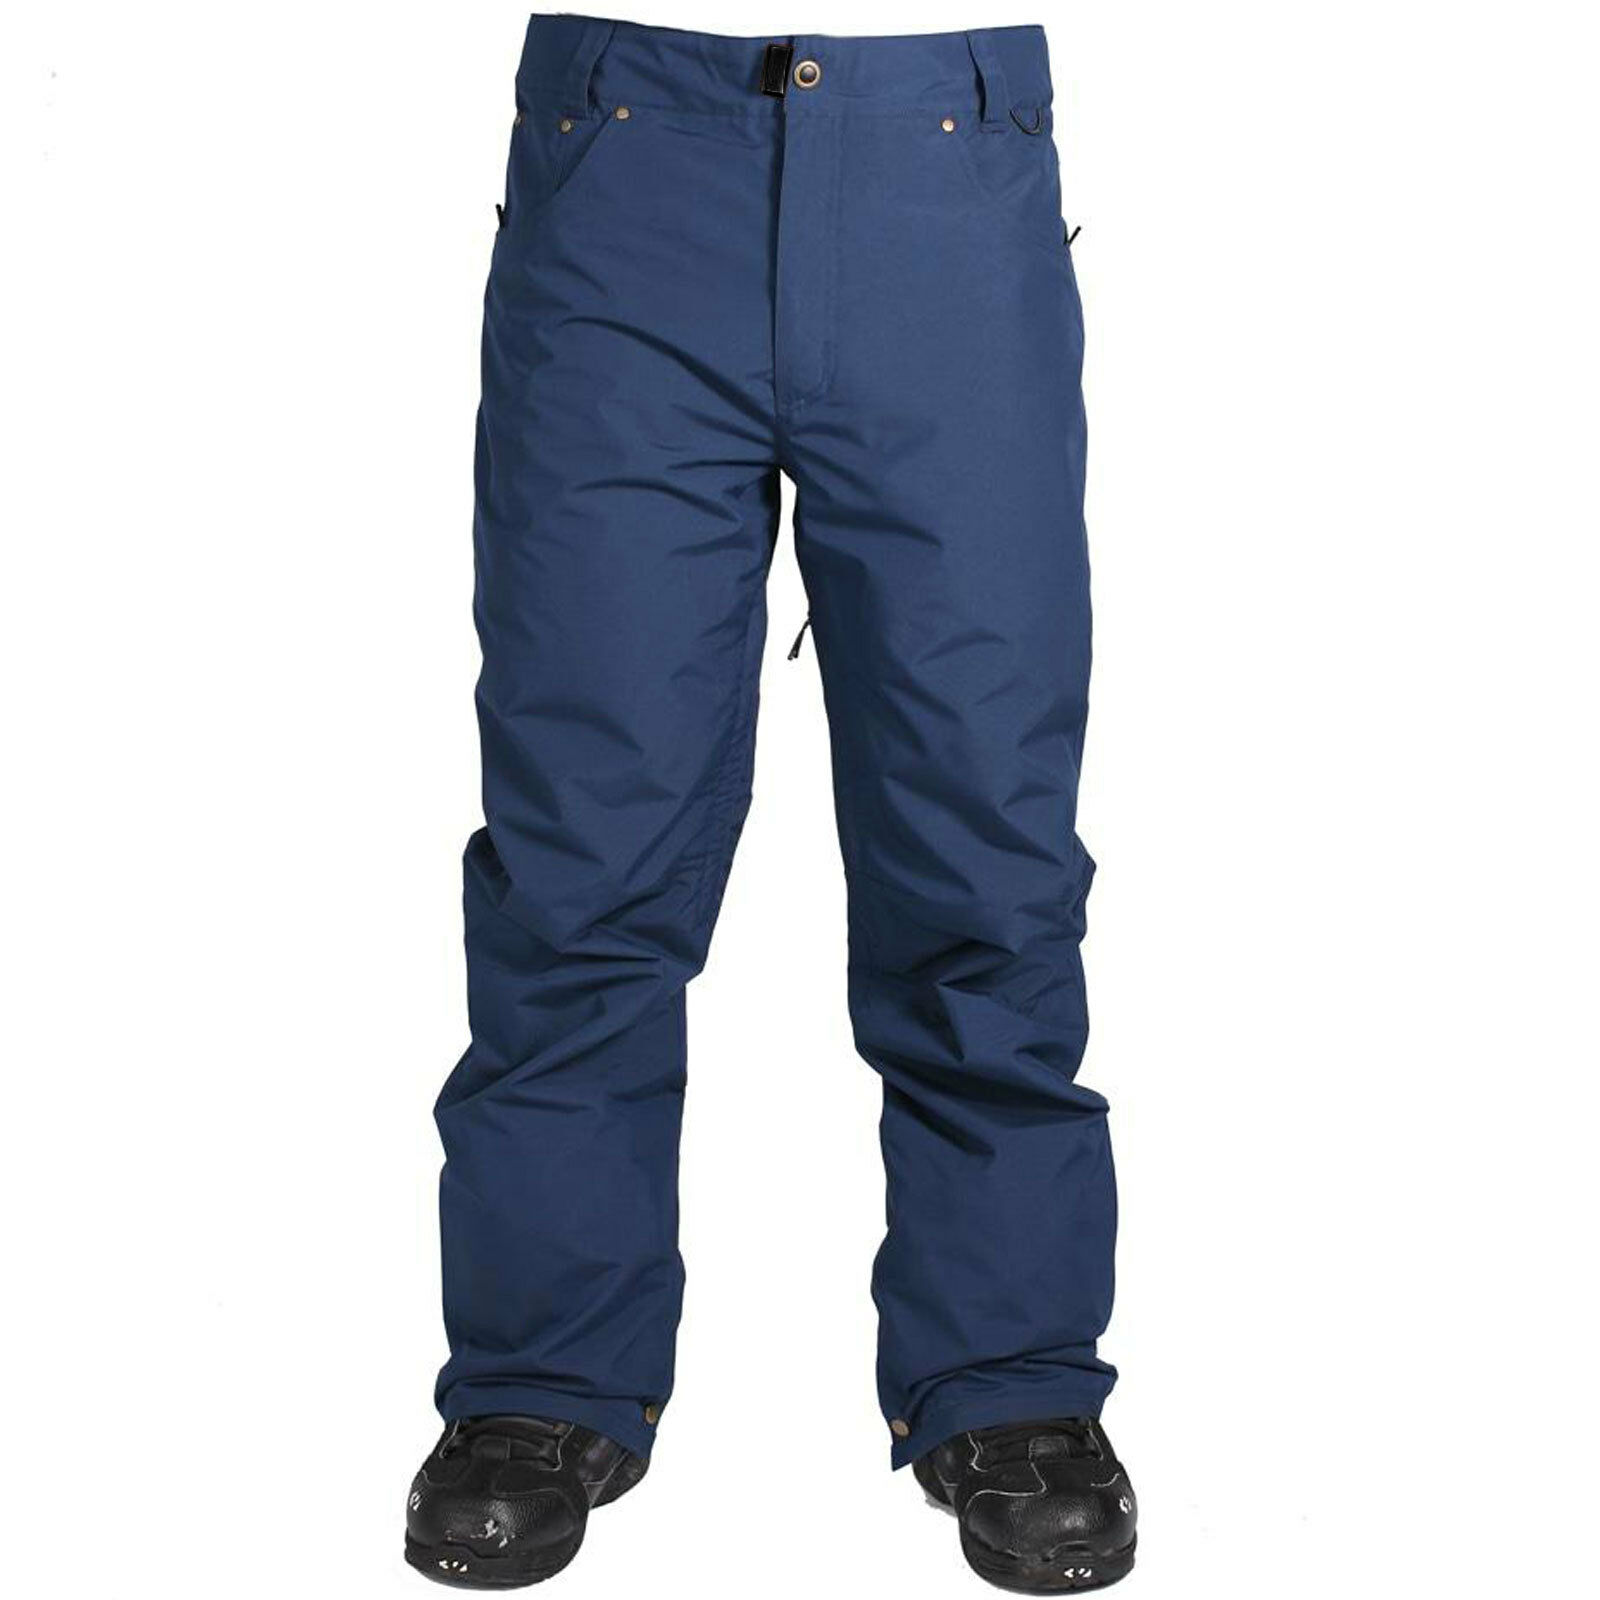 Ride Madrona Pant Men's Ski Snowboard Snowpants Winter Trousers Shorts New